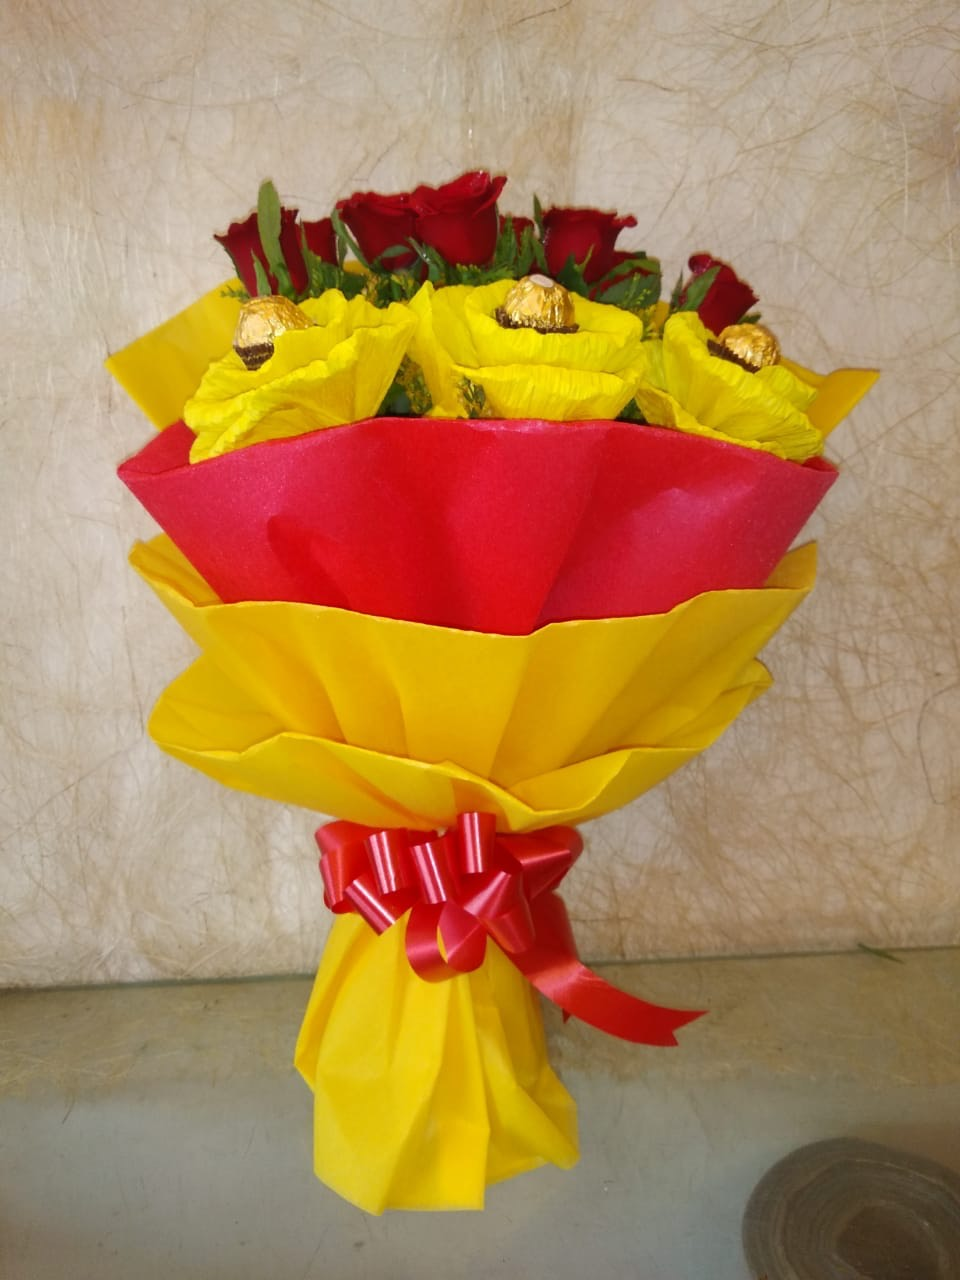 Cake Delivery in DLF Phase 1 GurgaonRed Roses Ferrero Rocher Bunch